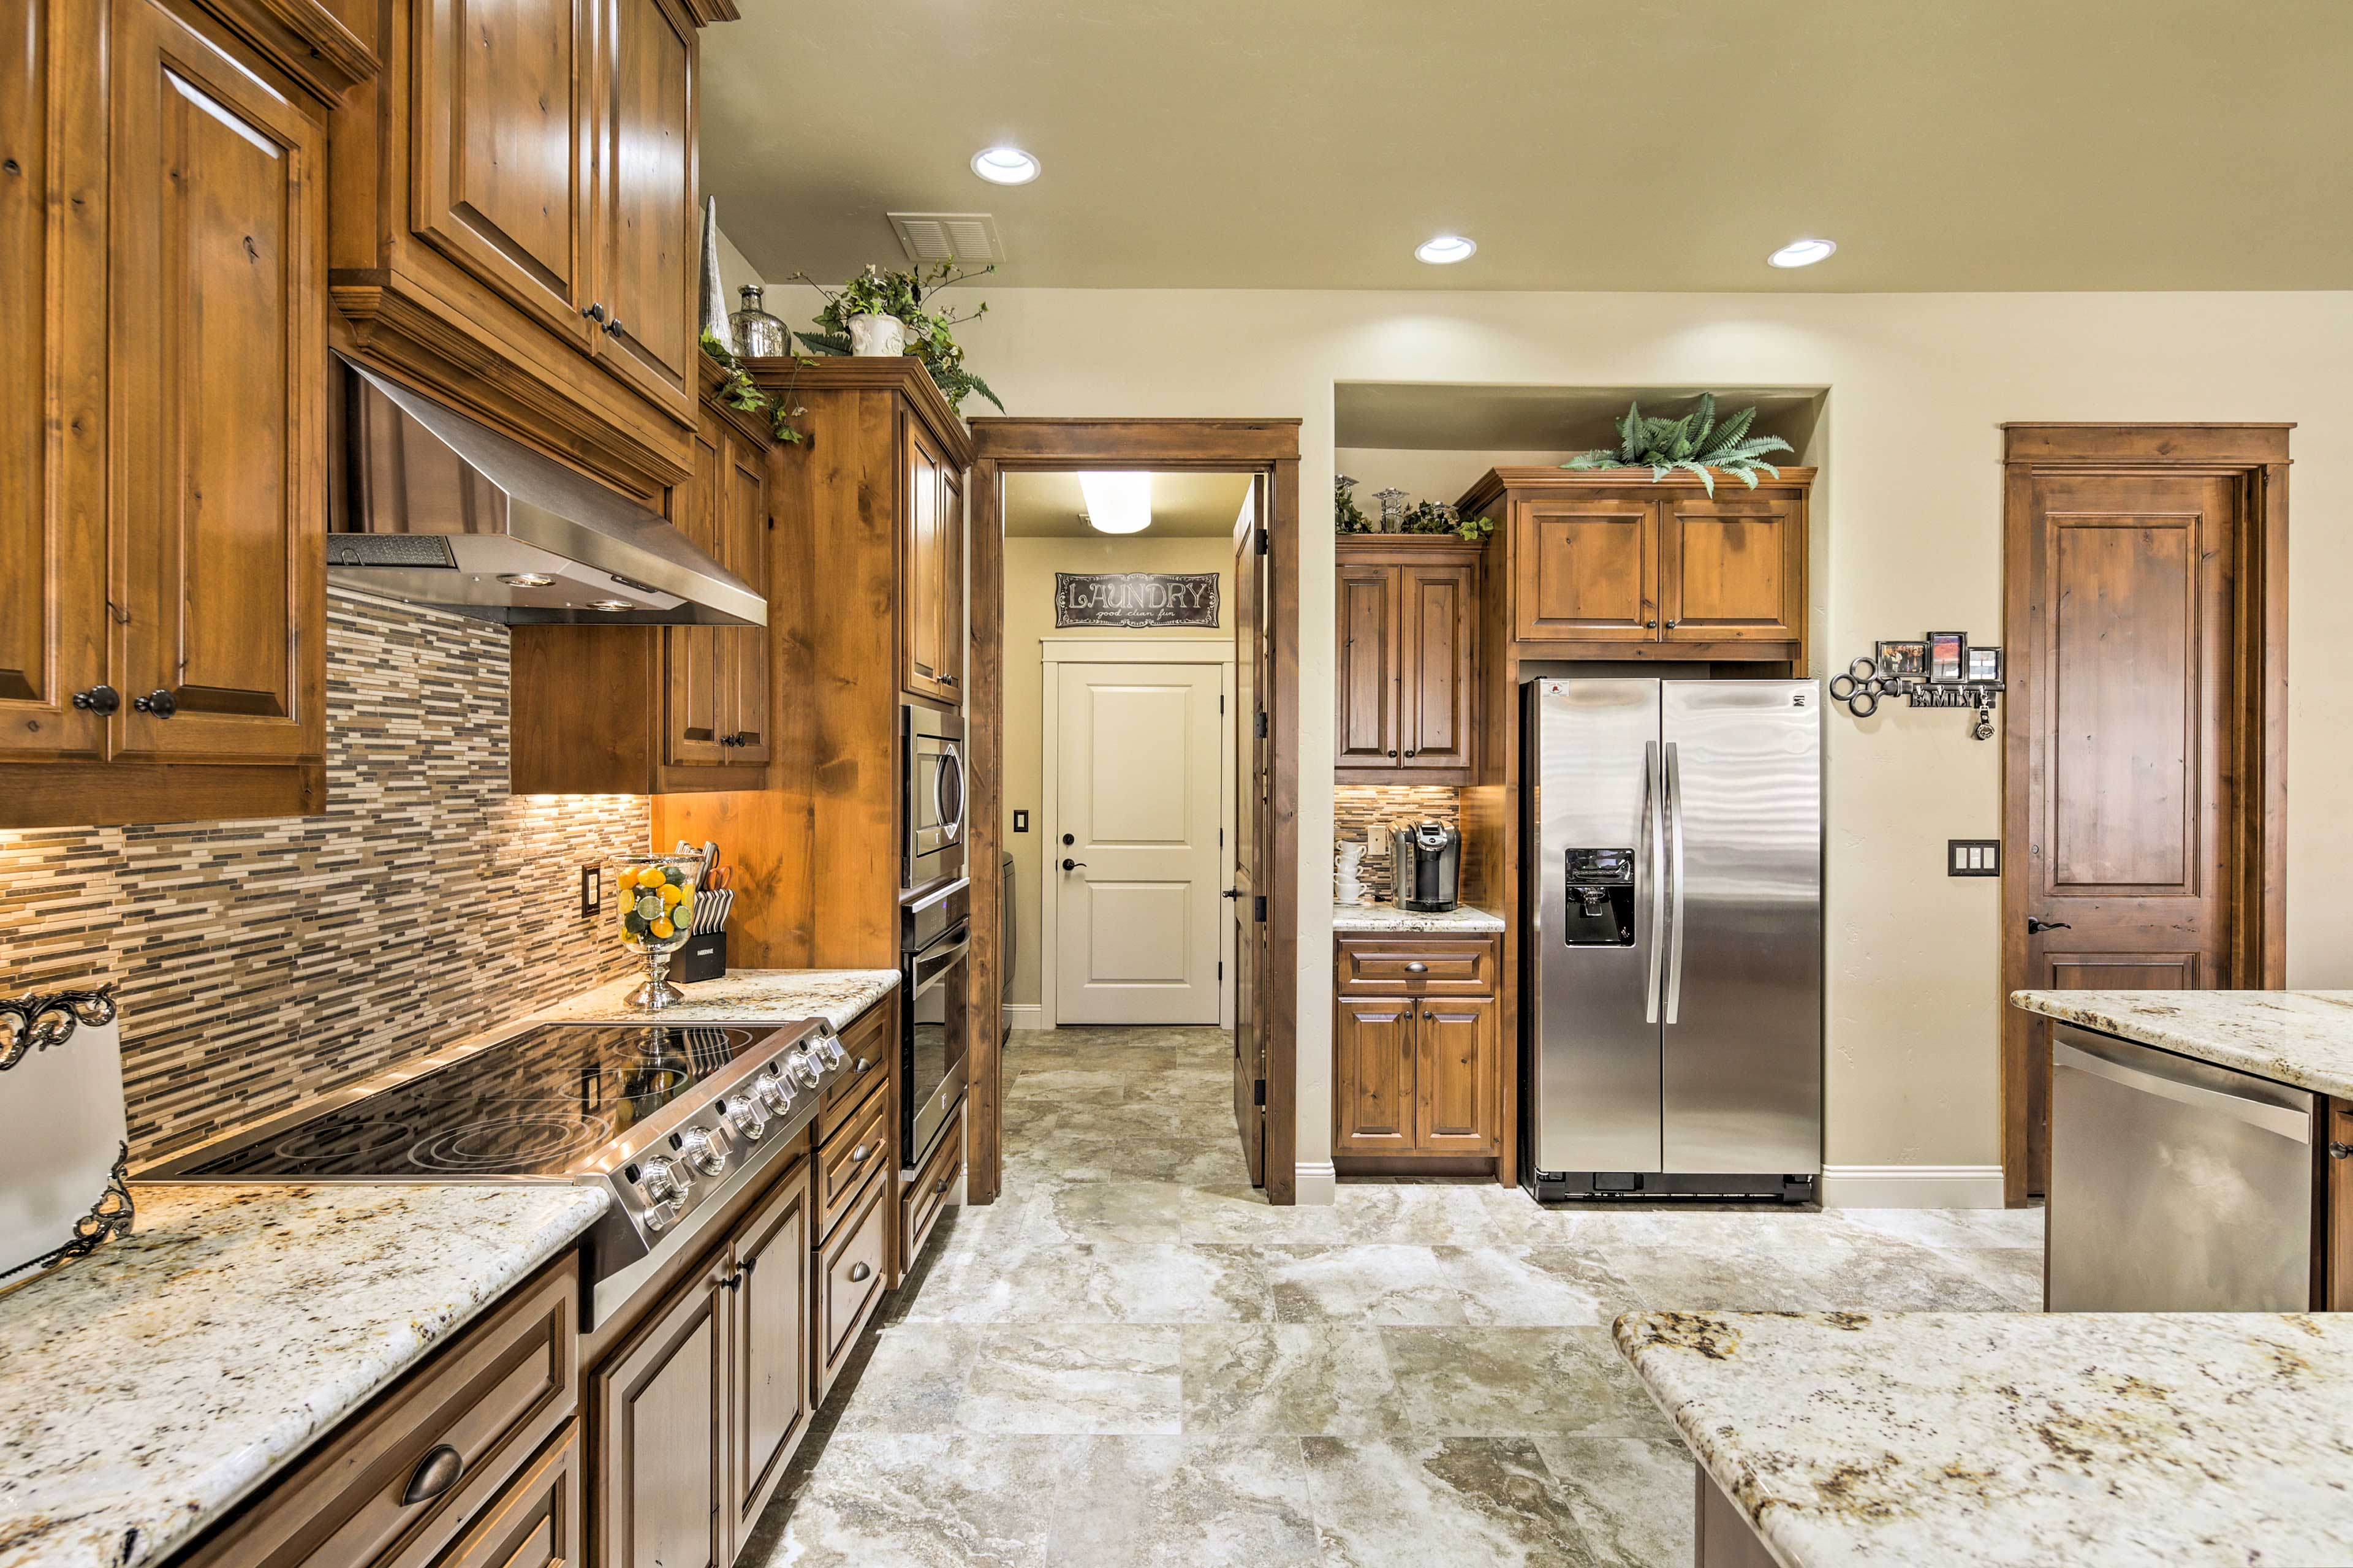 This kitchen comes fully equipped with stainless steel appliances.